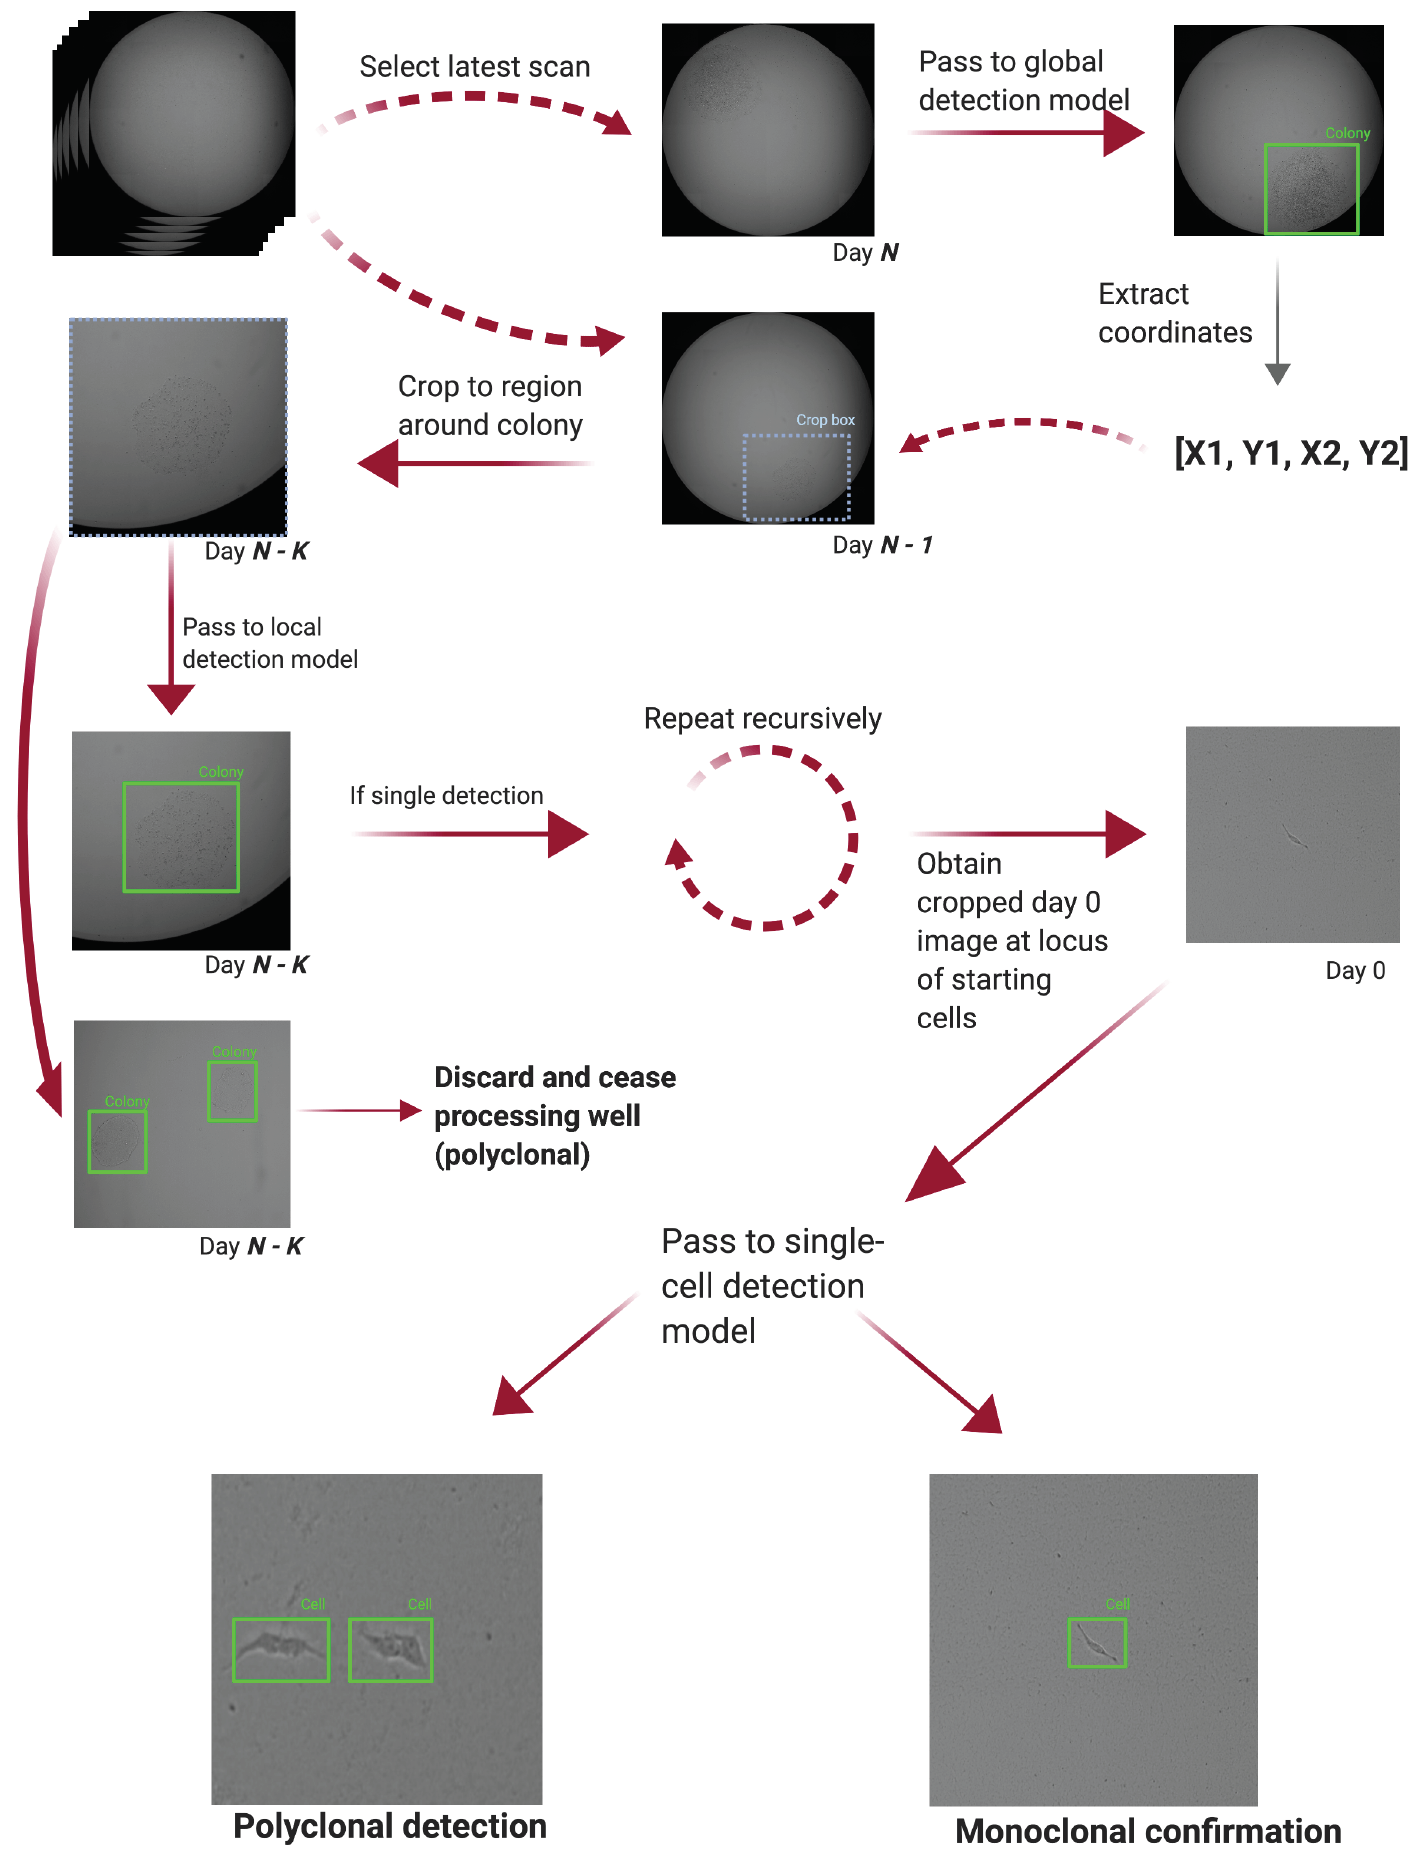 Schematic representing a broad overview of Monoqlo's design and algorithmic logic